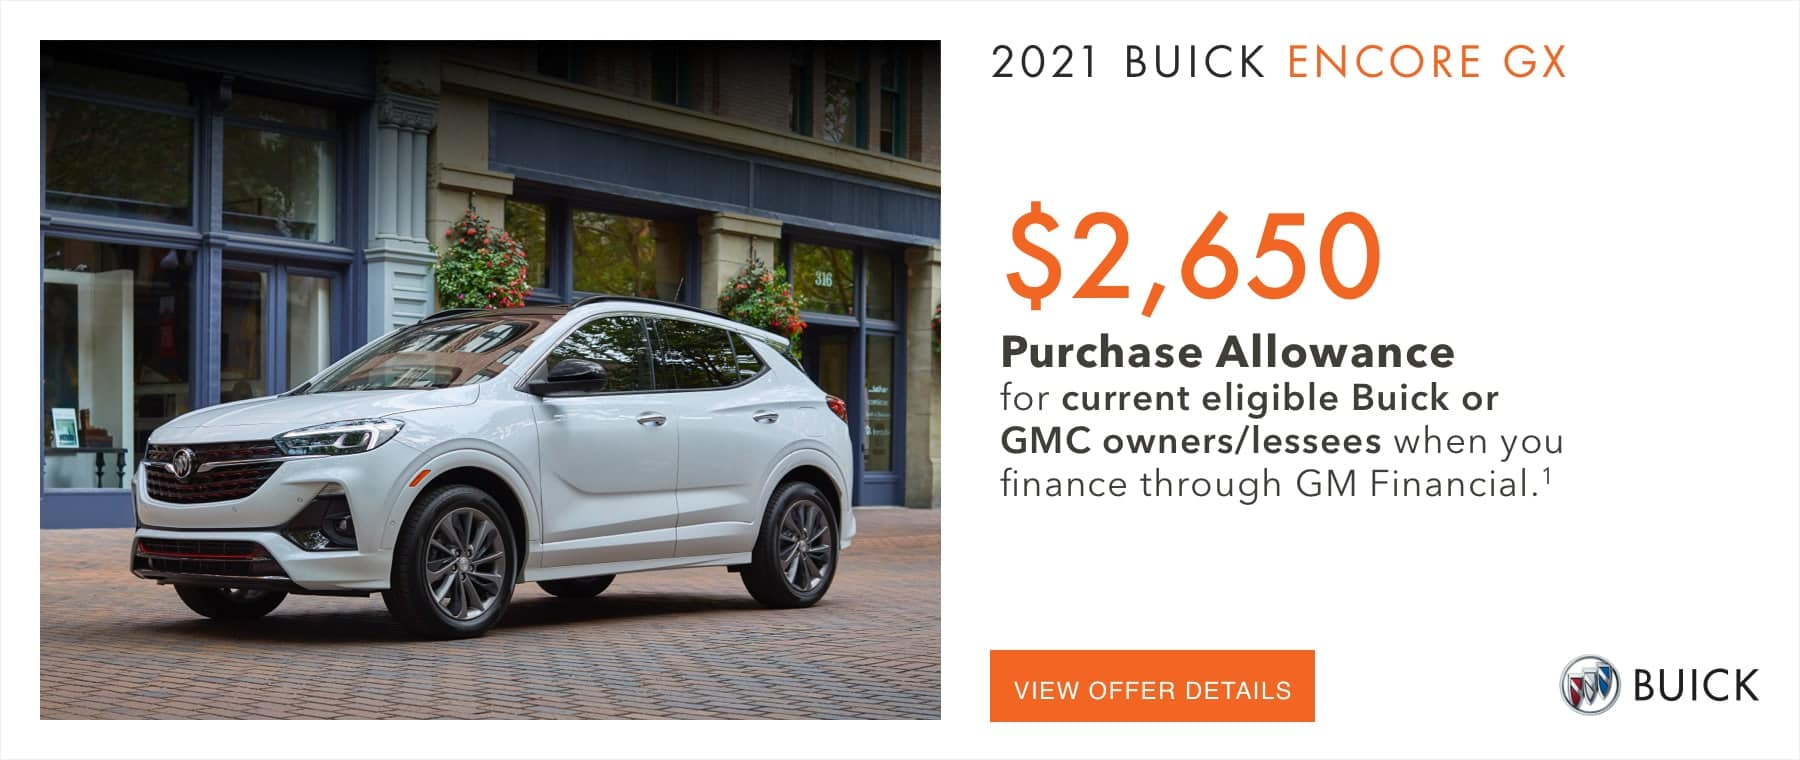 $2,650 Purchase Allowance for current eligible Buick or GMC owners/lessees when you finance through GM Financial.1